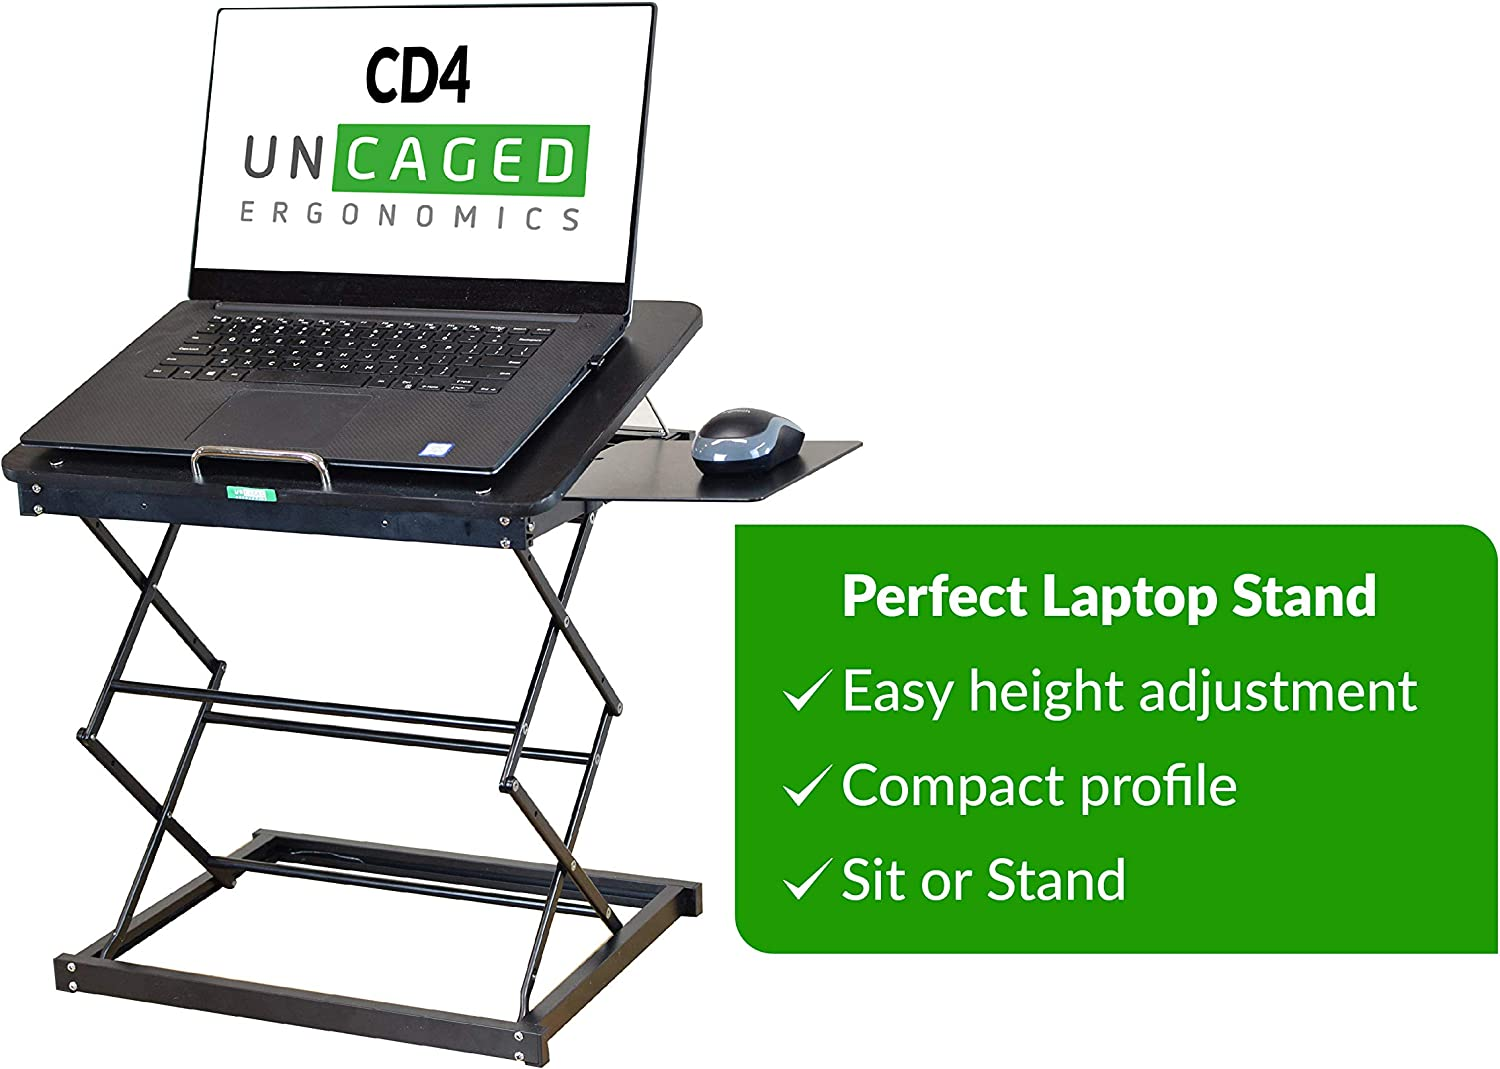 14x2inch Foldable Laptop Standing Desk,Adjust The Spine Computer Stand with Ventilated Adjustable Hight Function for MacBook Other laptops-Black 35x4cm